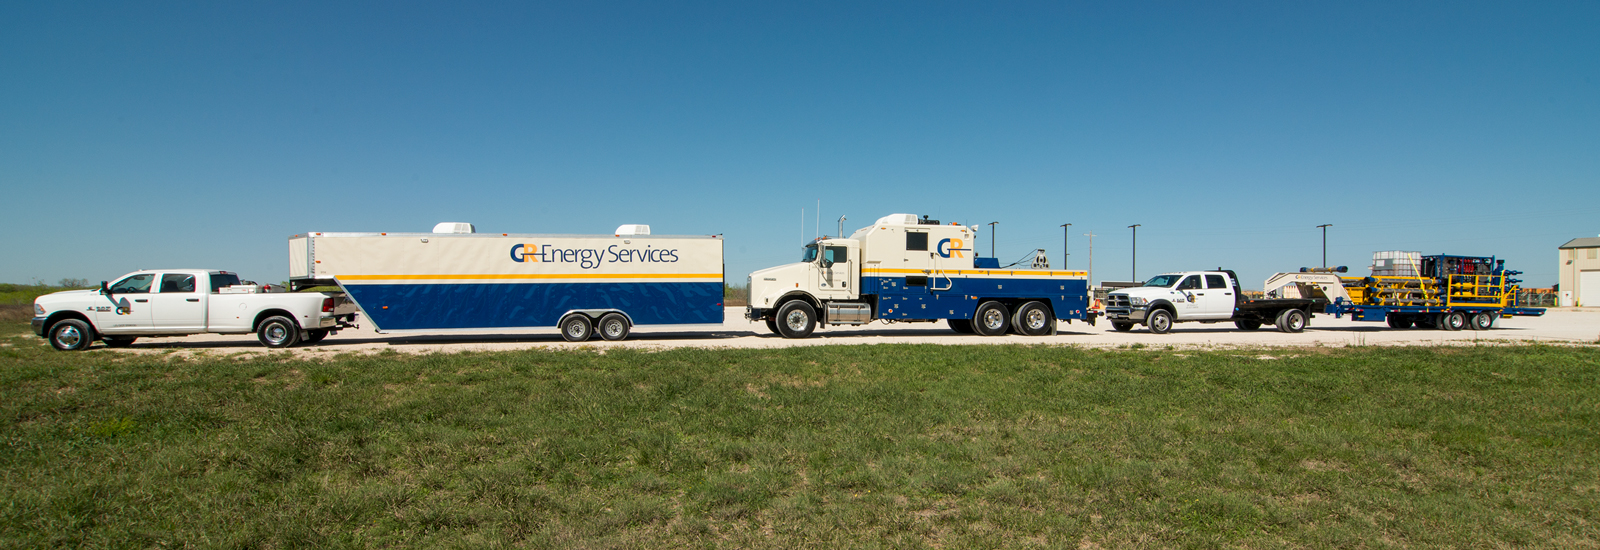 Welcome to GR Energy Services